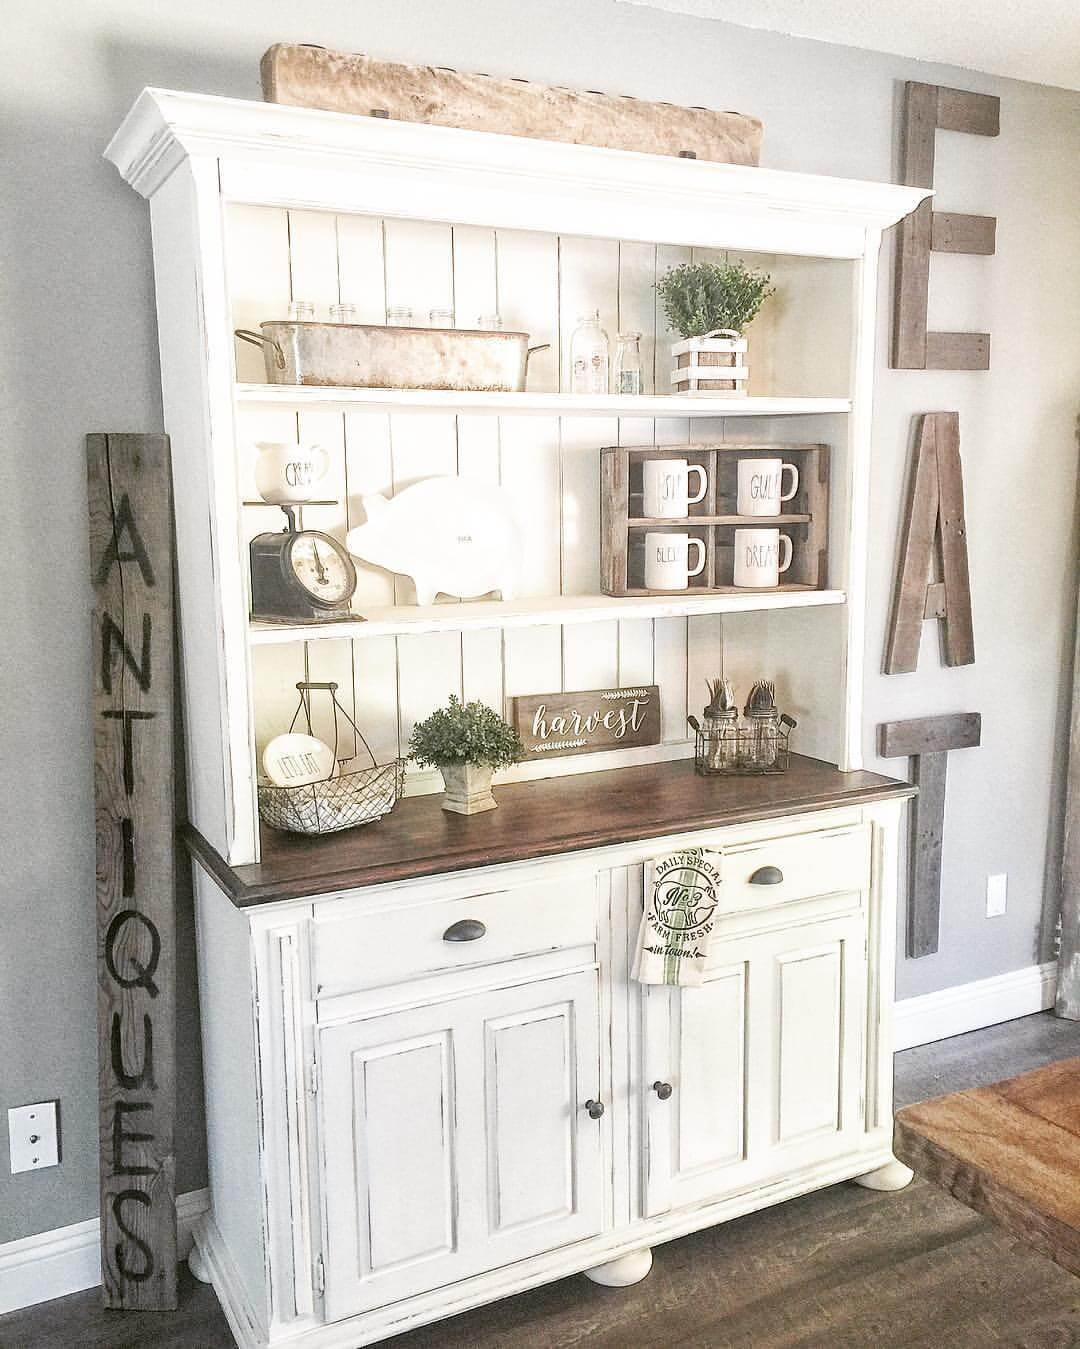 High 2018 Room Hutch Dimensions Room Hutch Designs Classic Washed Country Kitchen Hutch Room Storage Ideas houzz 01 Dining Room Hutch